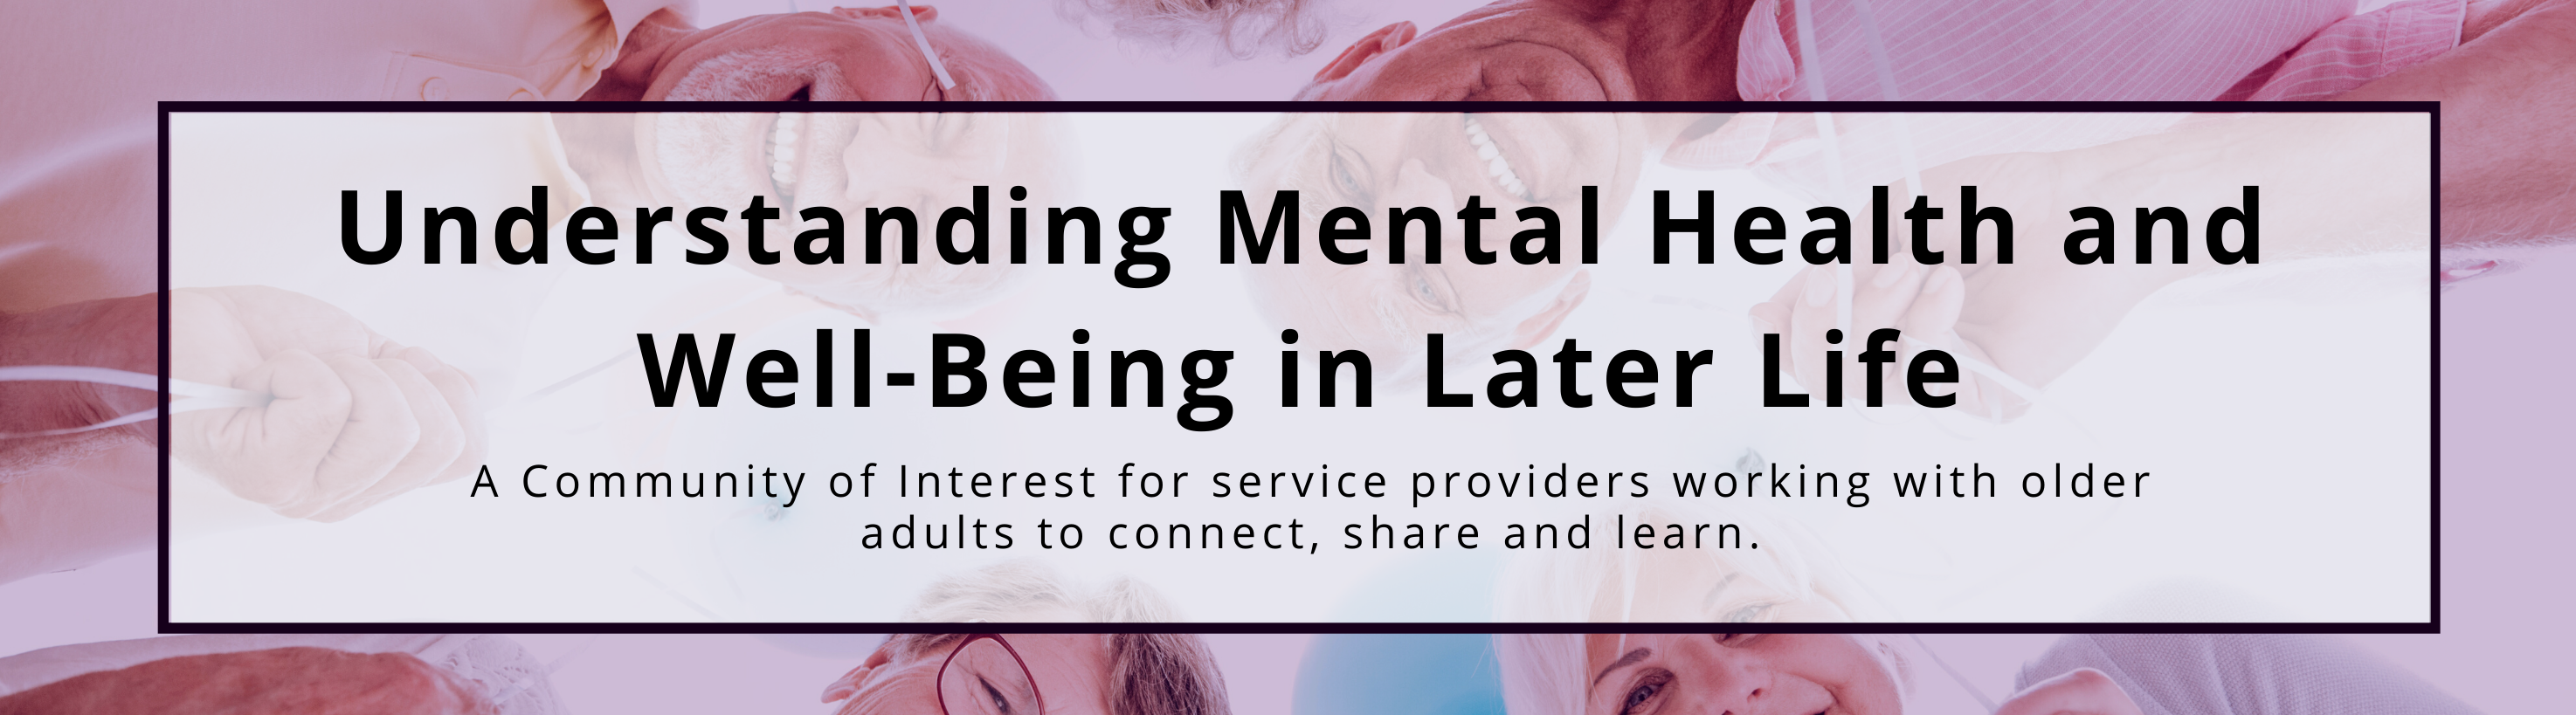 Understanding Mental Health and Well-Being in Later Life: A Community of Practice for partner organizations and facilitators to connect, share and learn.